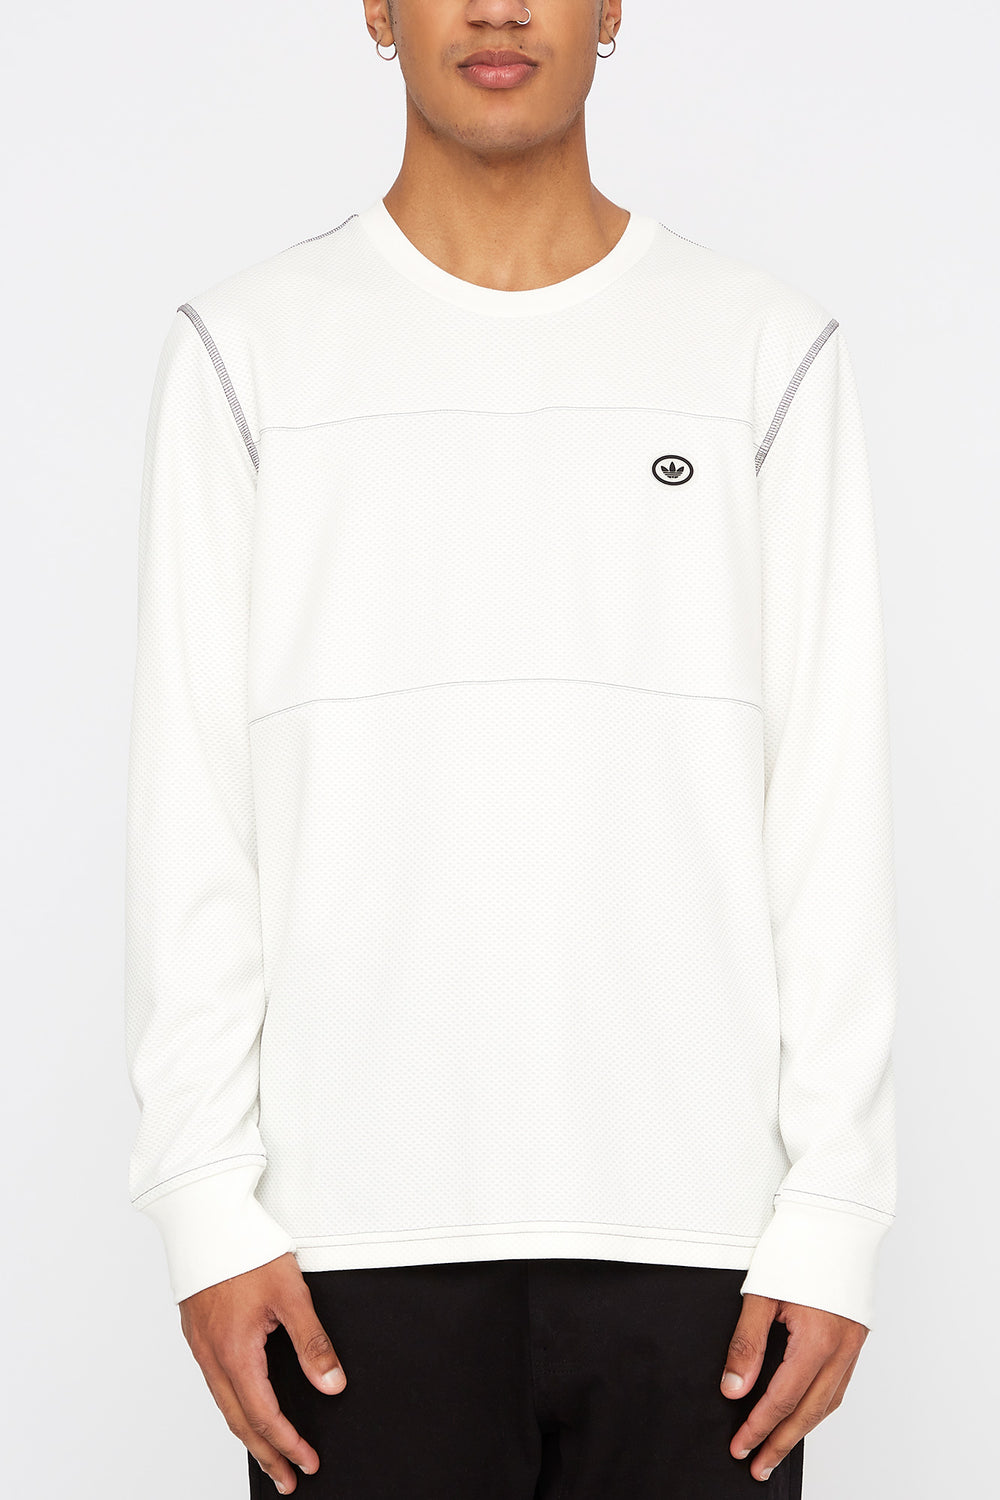 Adidas Mens First Layer Long Sleeve Shirt White